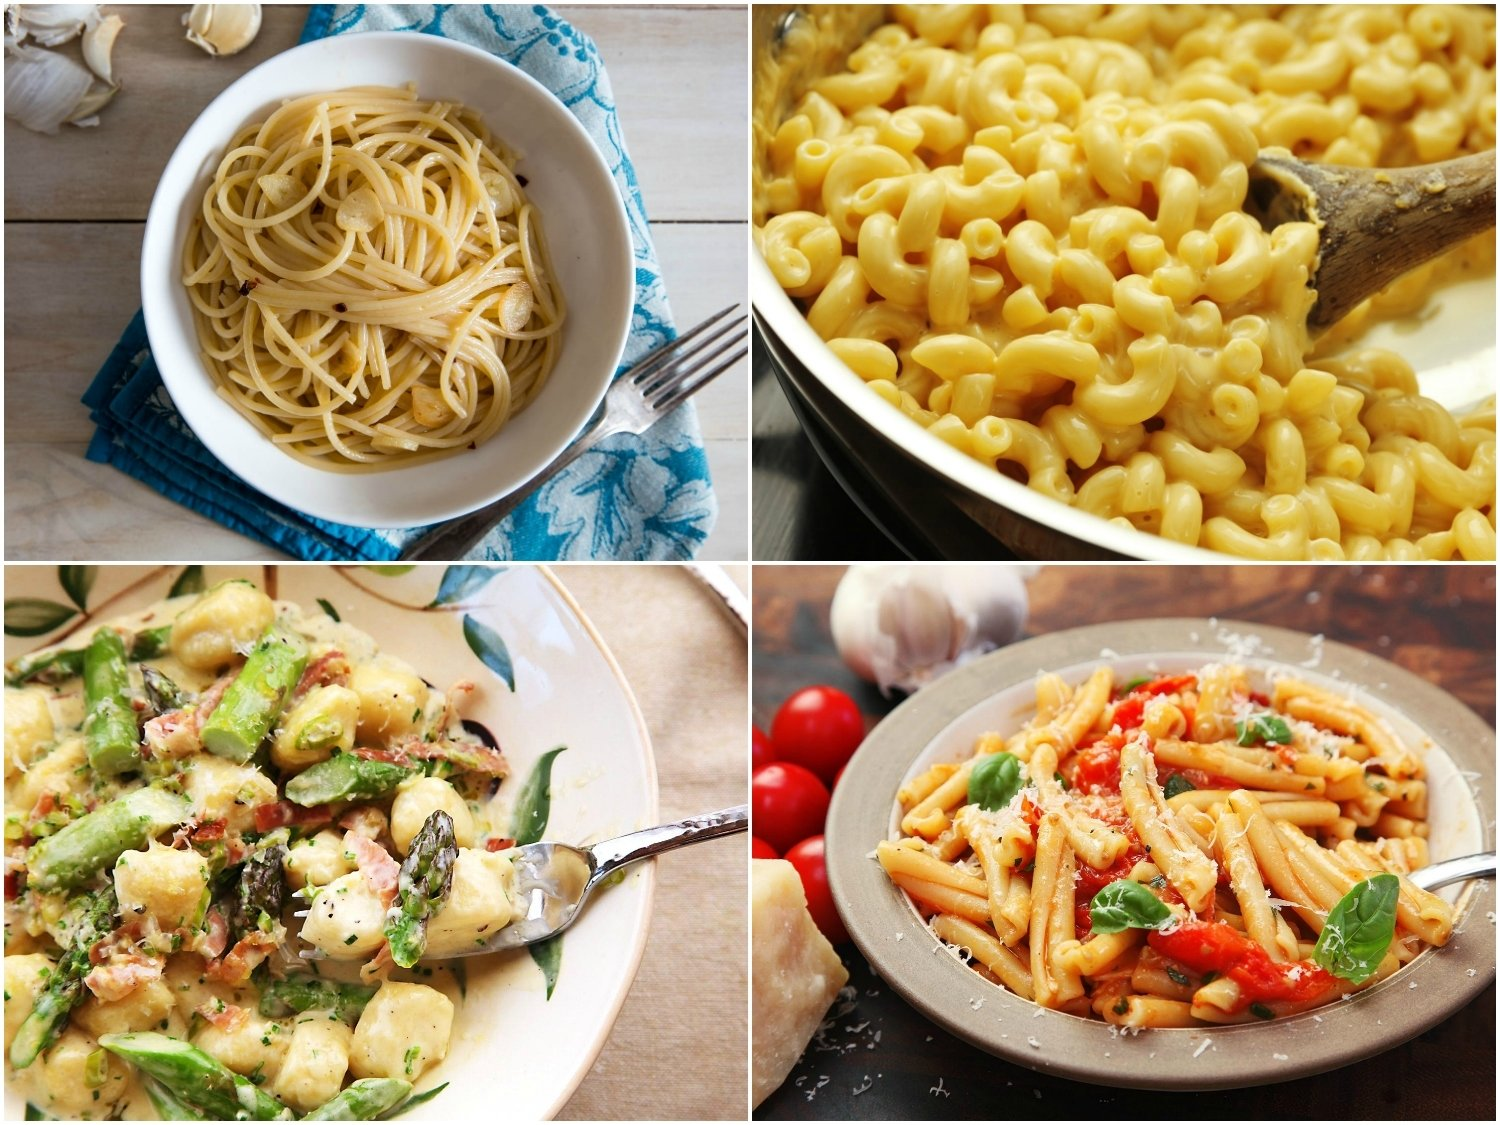 10 Pretty Quick And Simple Dinner Ideas 25 quick pasta recipes for simple weeknight meals serious eats 2